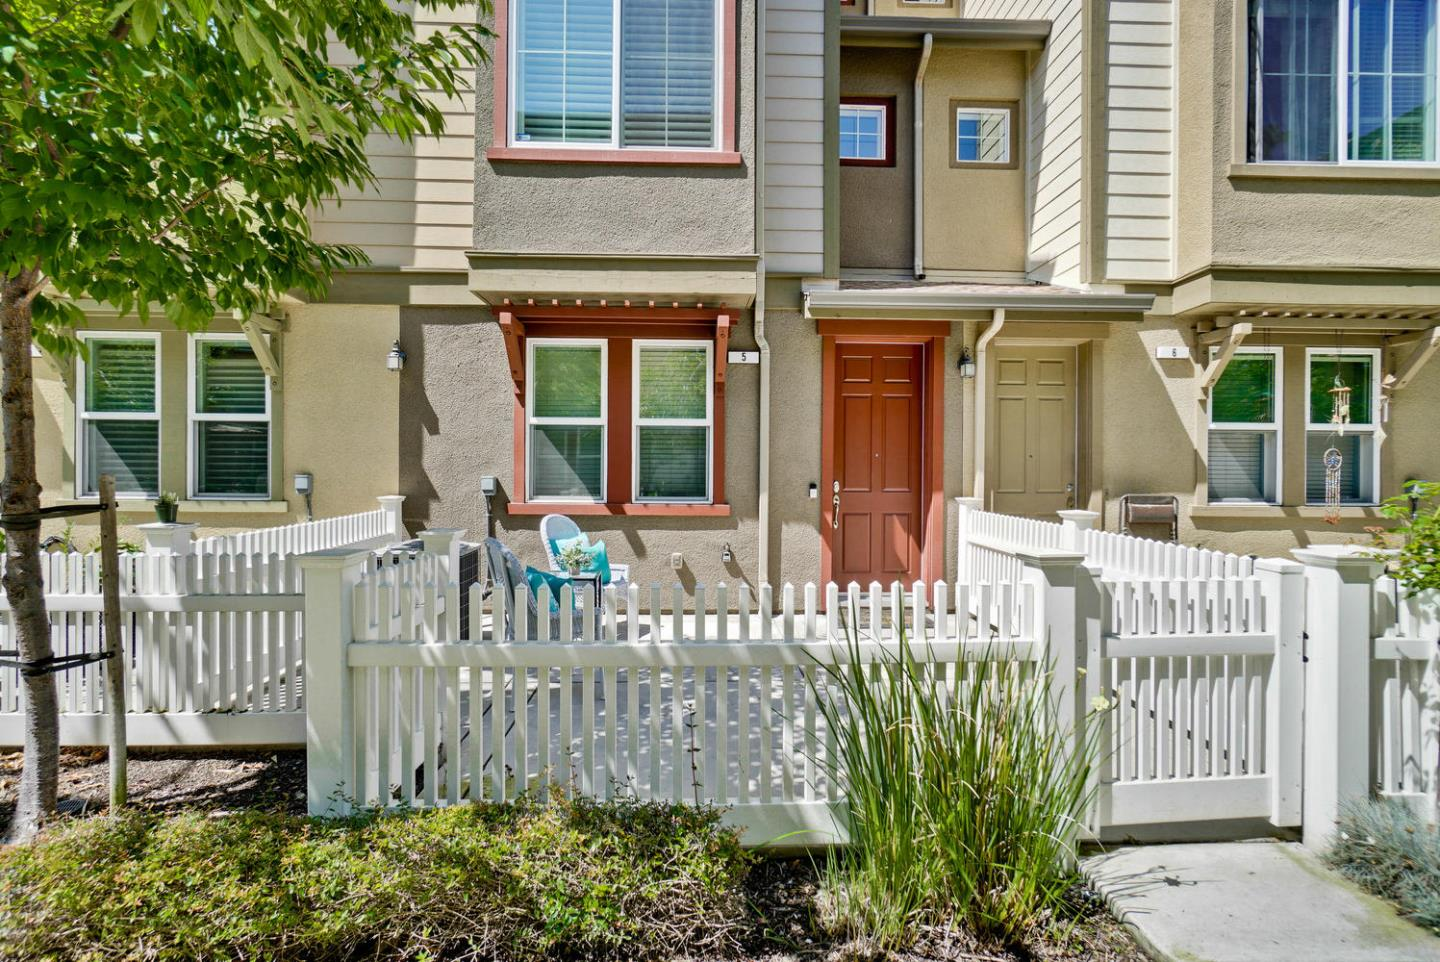 207 Peppermint Tree Terrace Unit 5 Sunnyvale, CA 94086 - MLS #: ML81721983